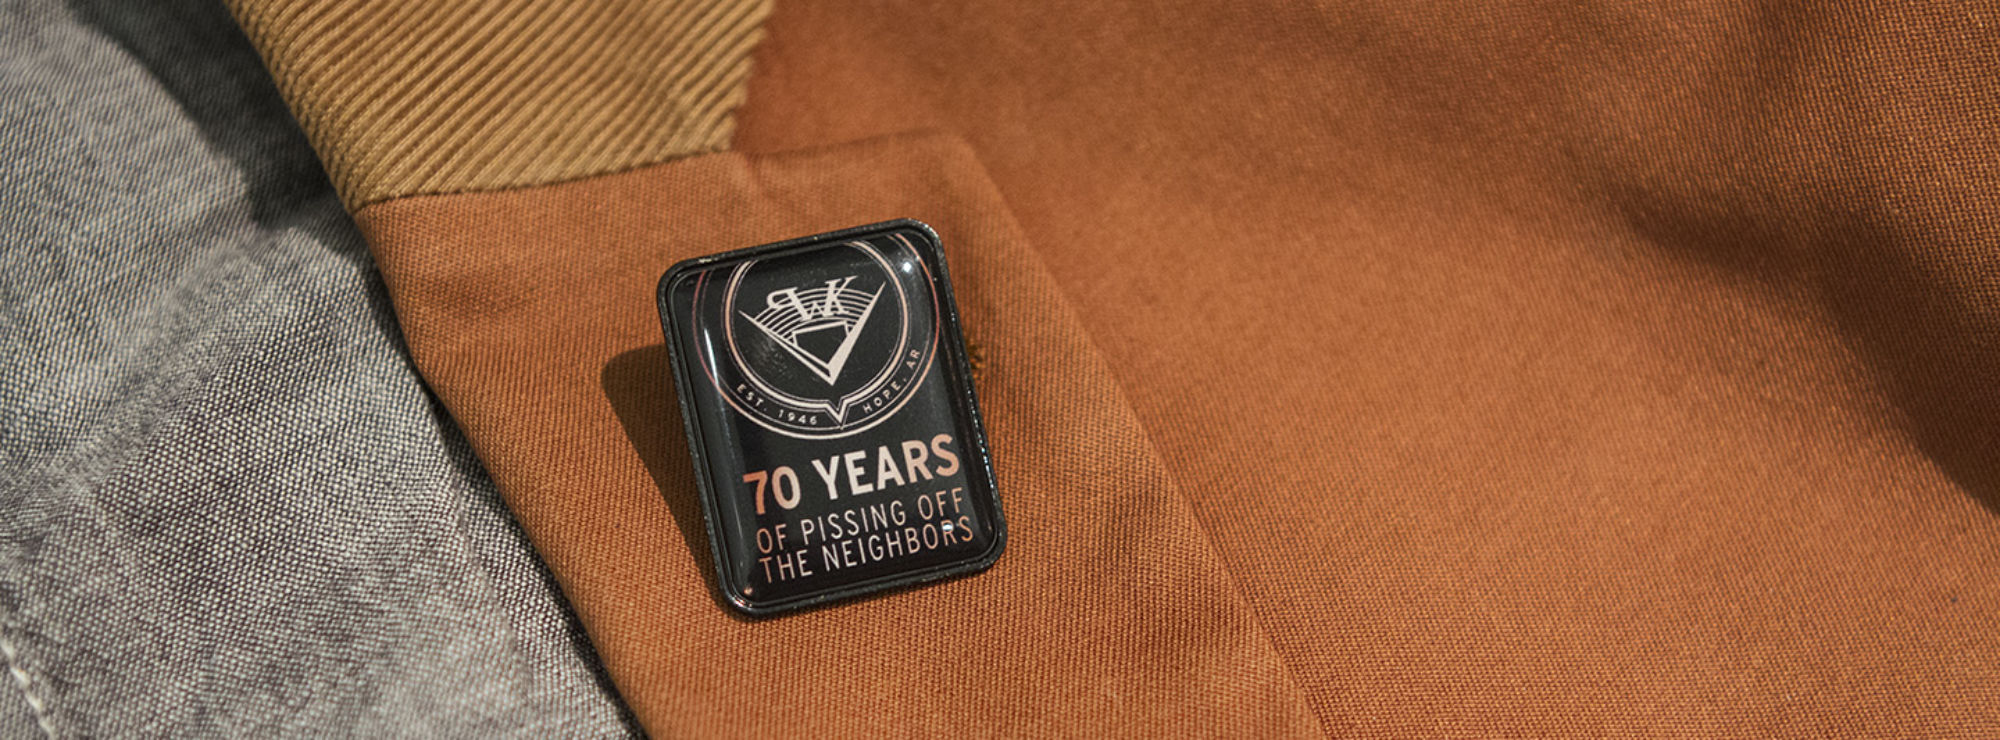 Pissing off the Neighbors lapel pin